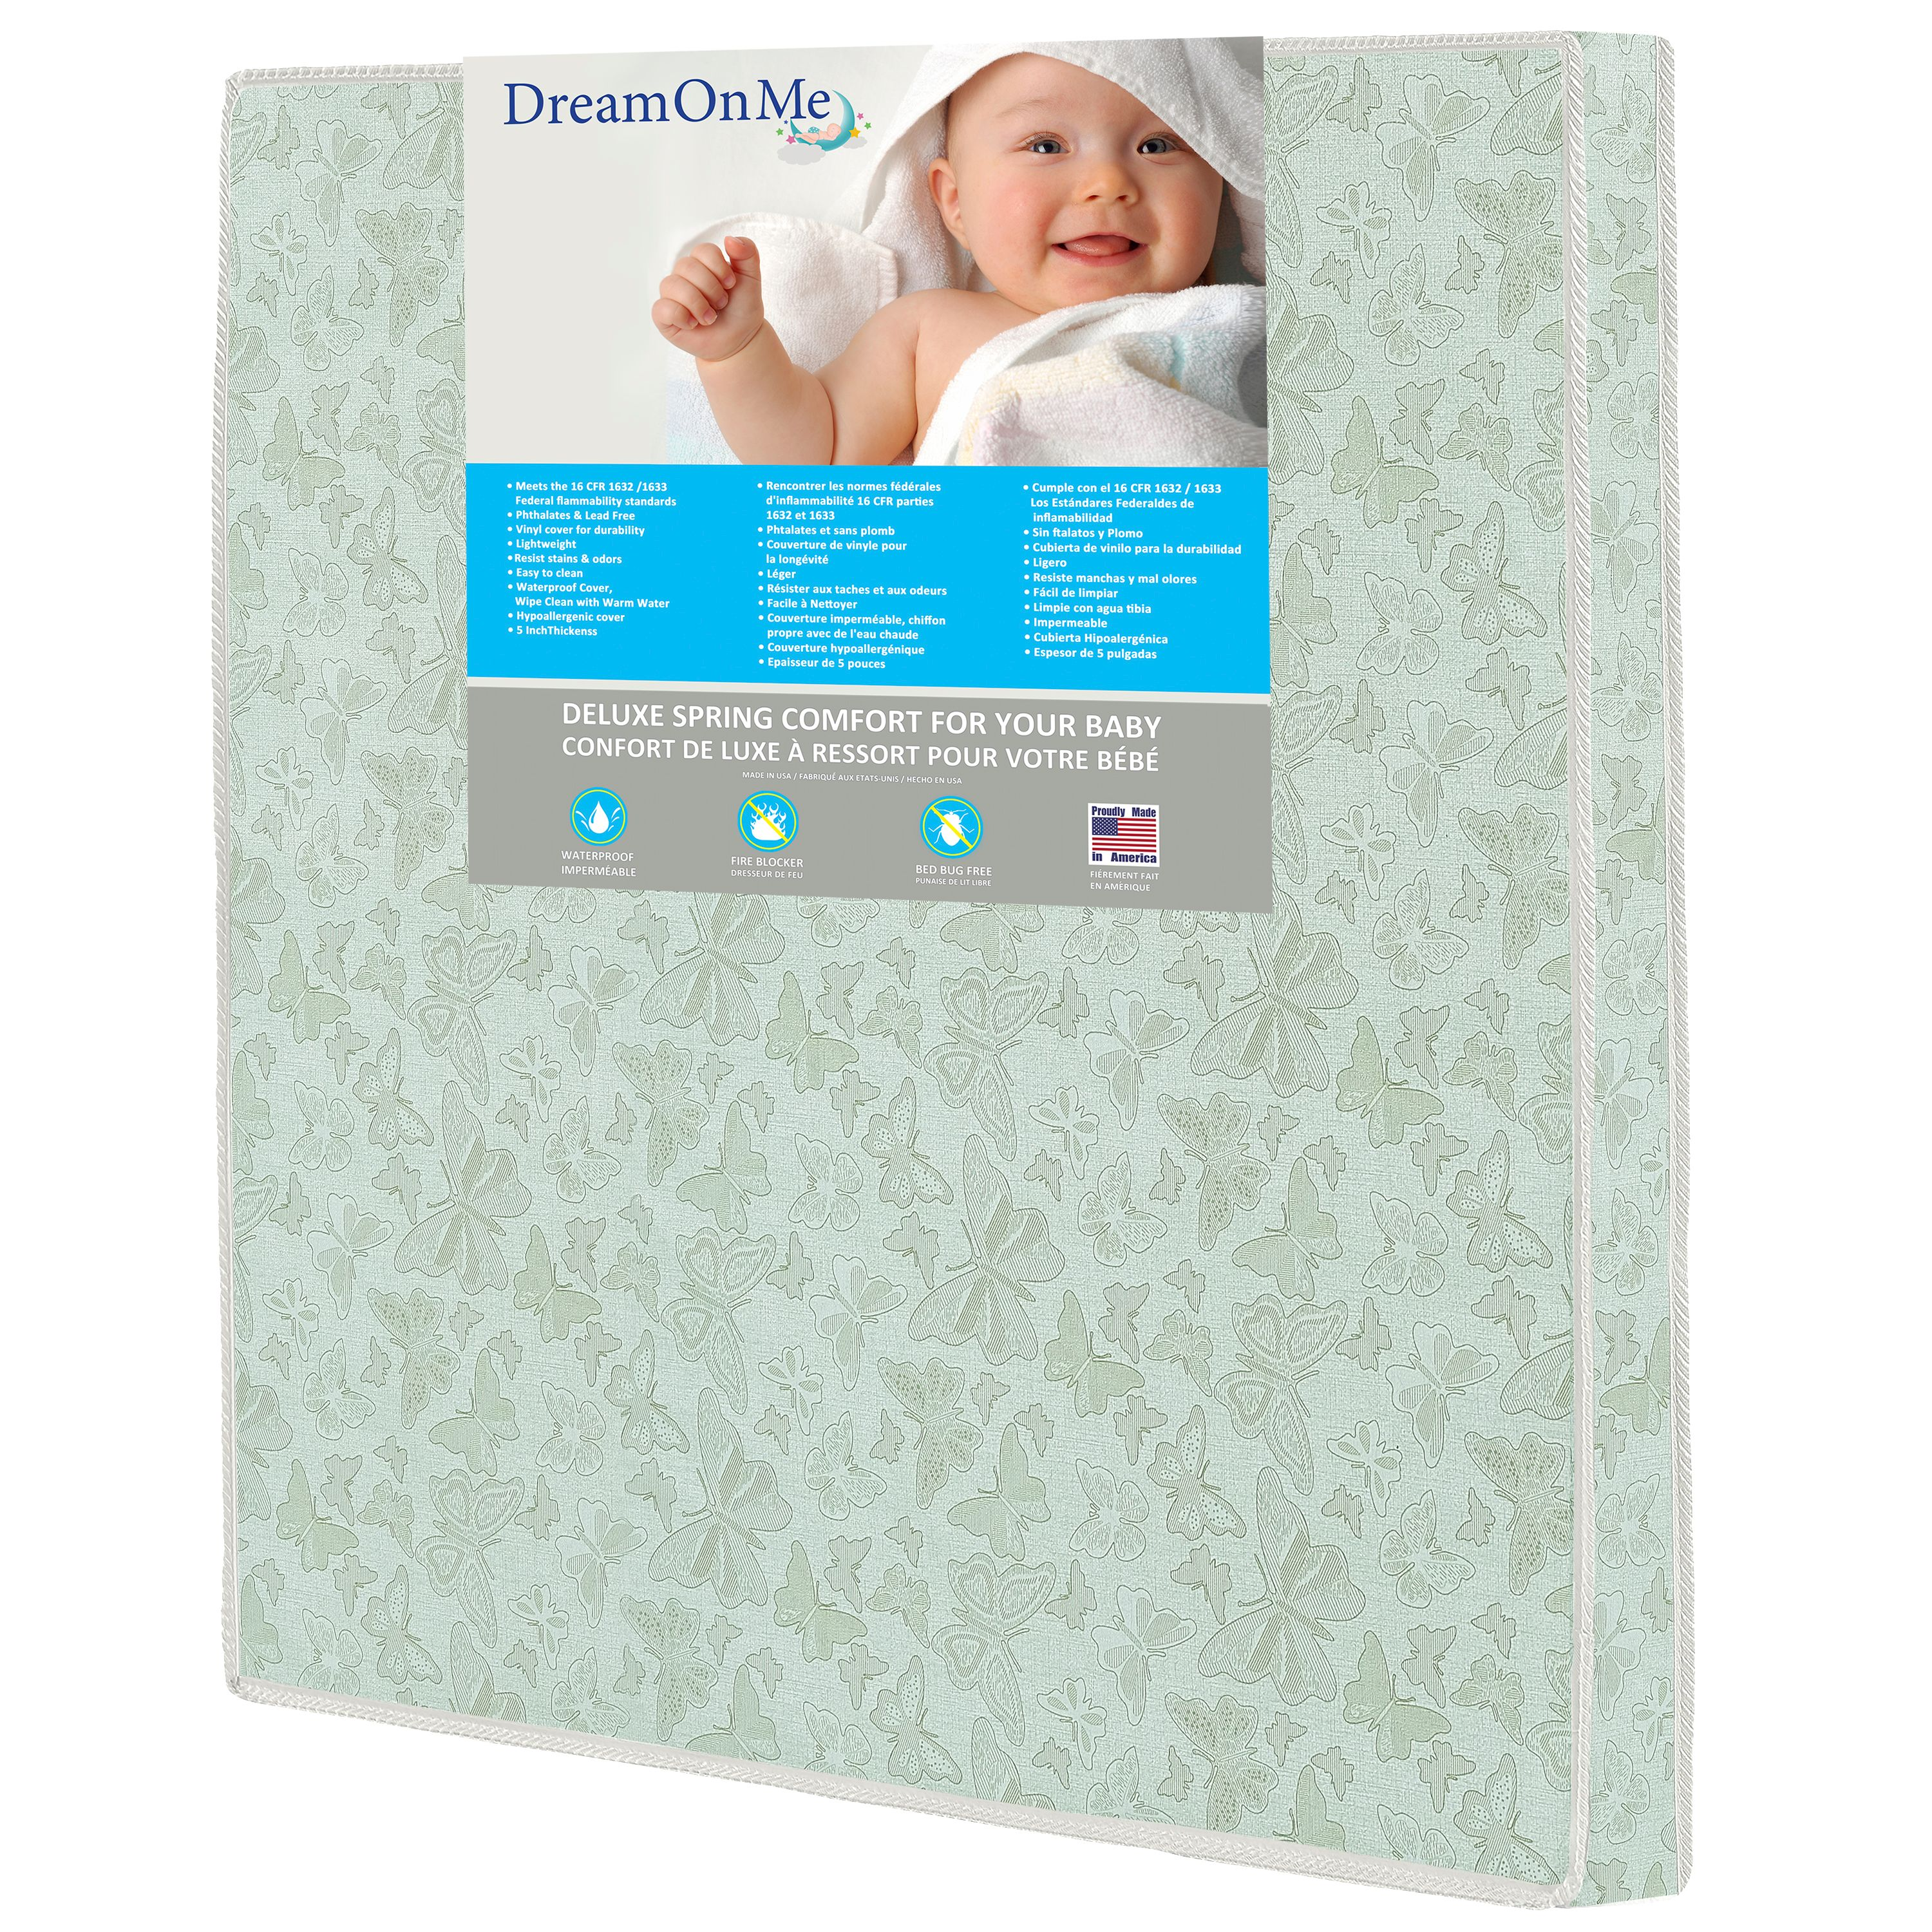 Dream On Me Totbloc Play Yard Firm Foam Mattress